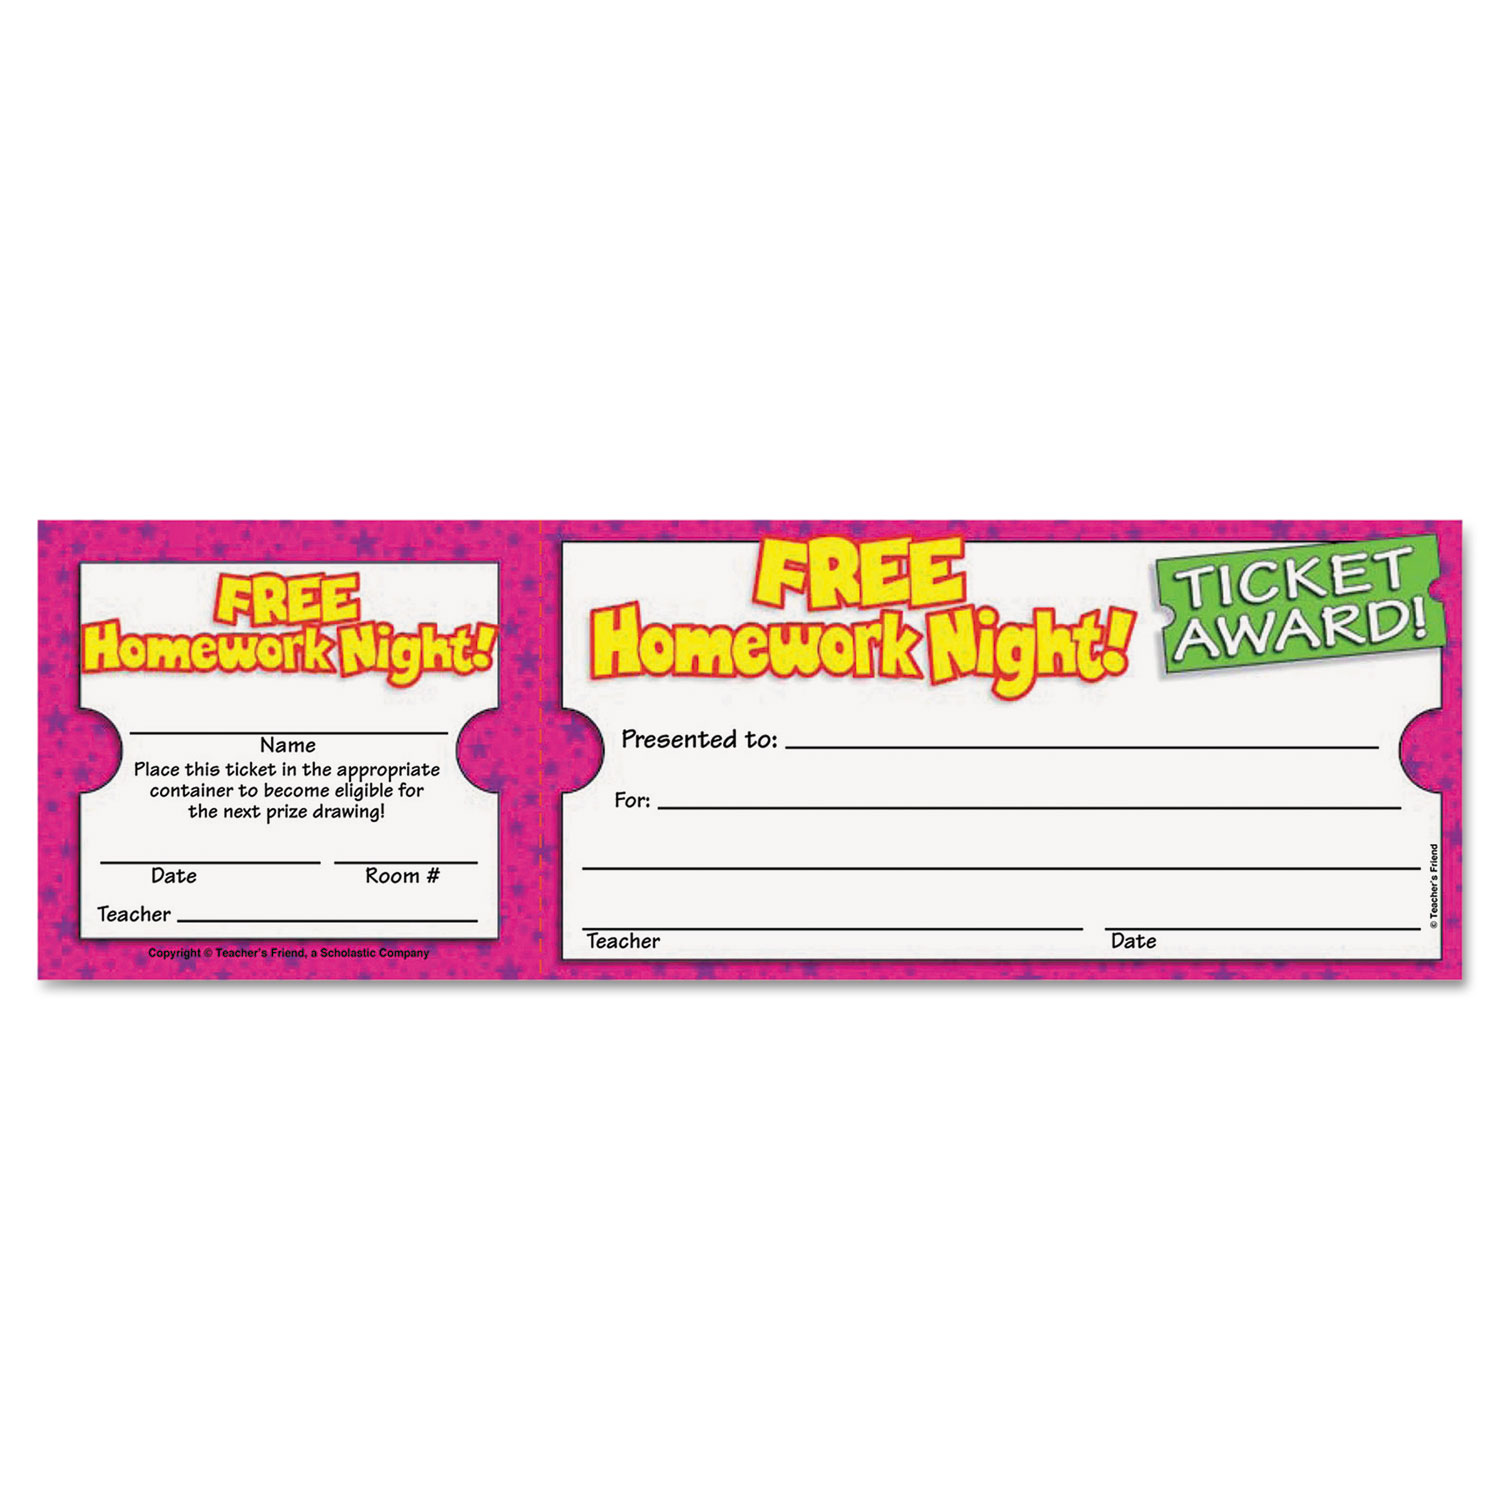 Free Homework Night Award Ticket, 8 1 2w x 2 3 4h, 100 2-Part Tickets Pack by Scholastic